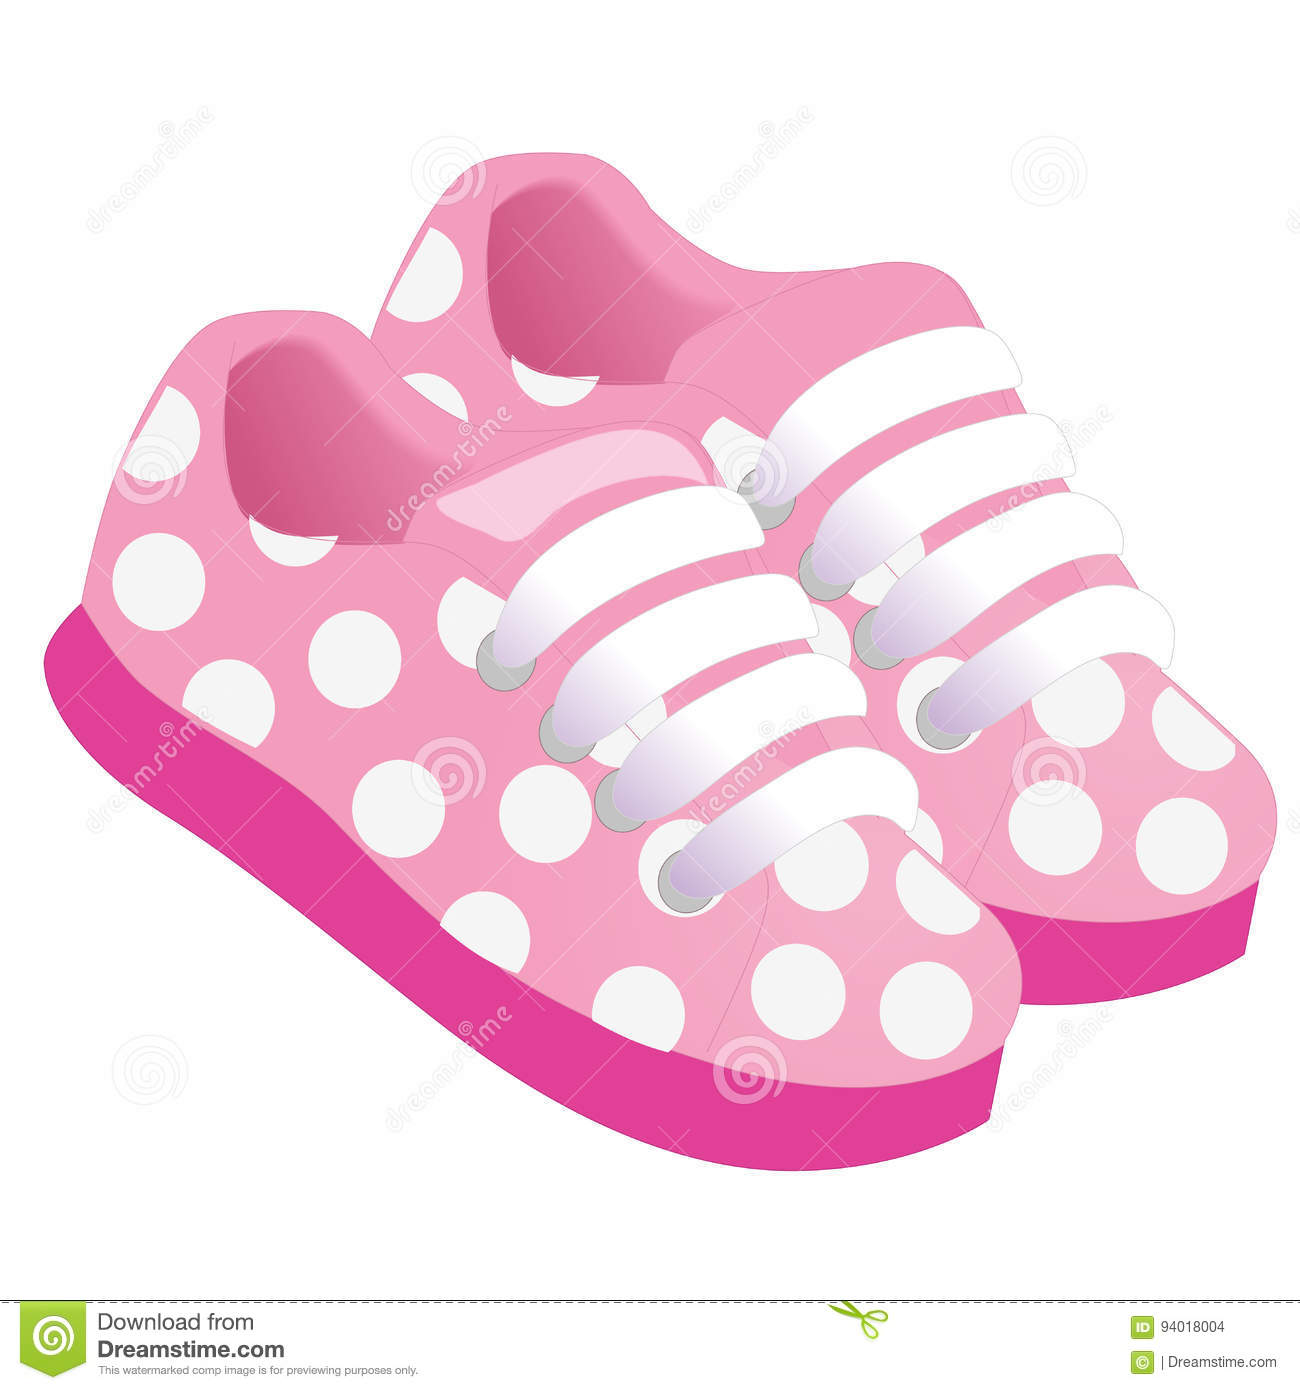 pink childrens or young adult shoes pair kids sneaker pink girls rh dreamstime com clip art kid shoes clip art kid shoes